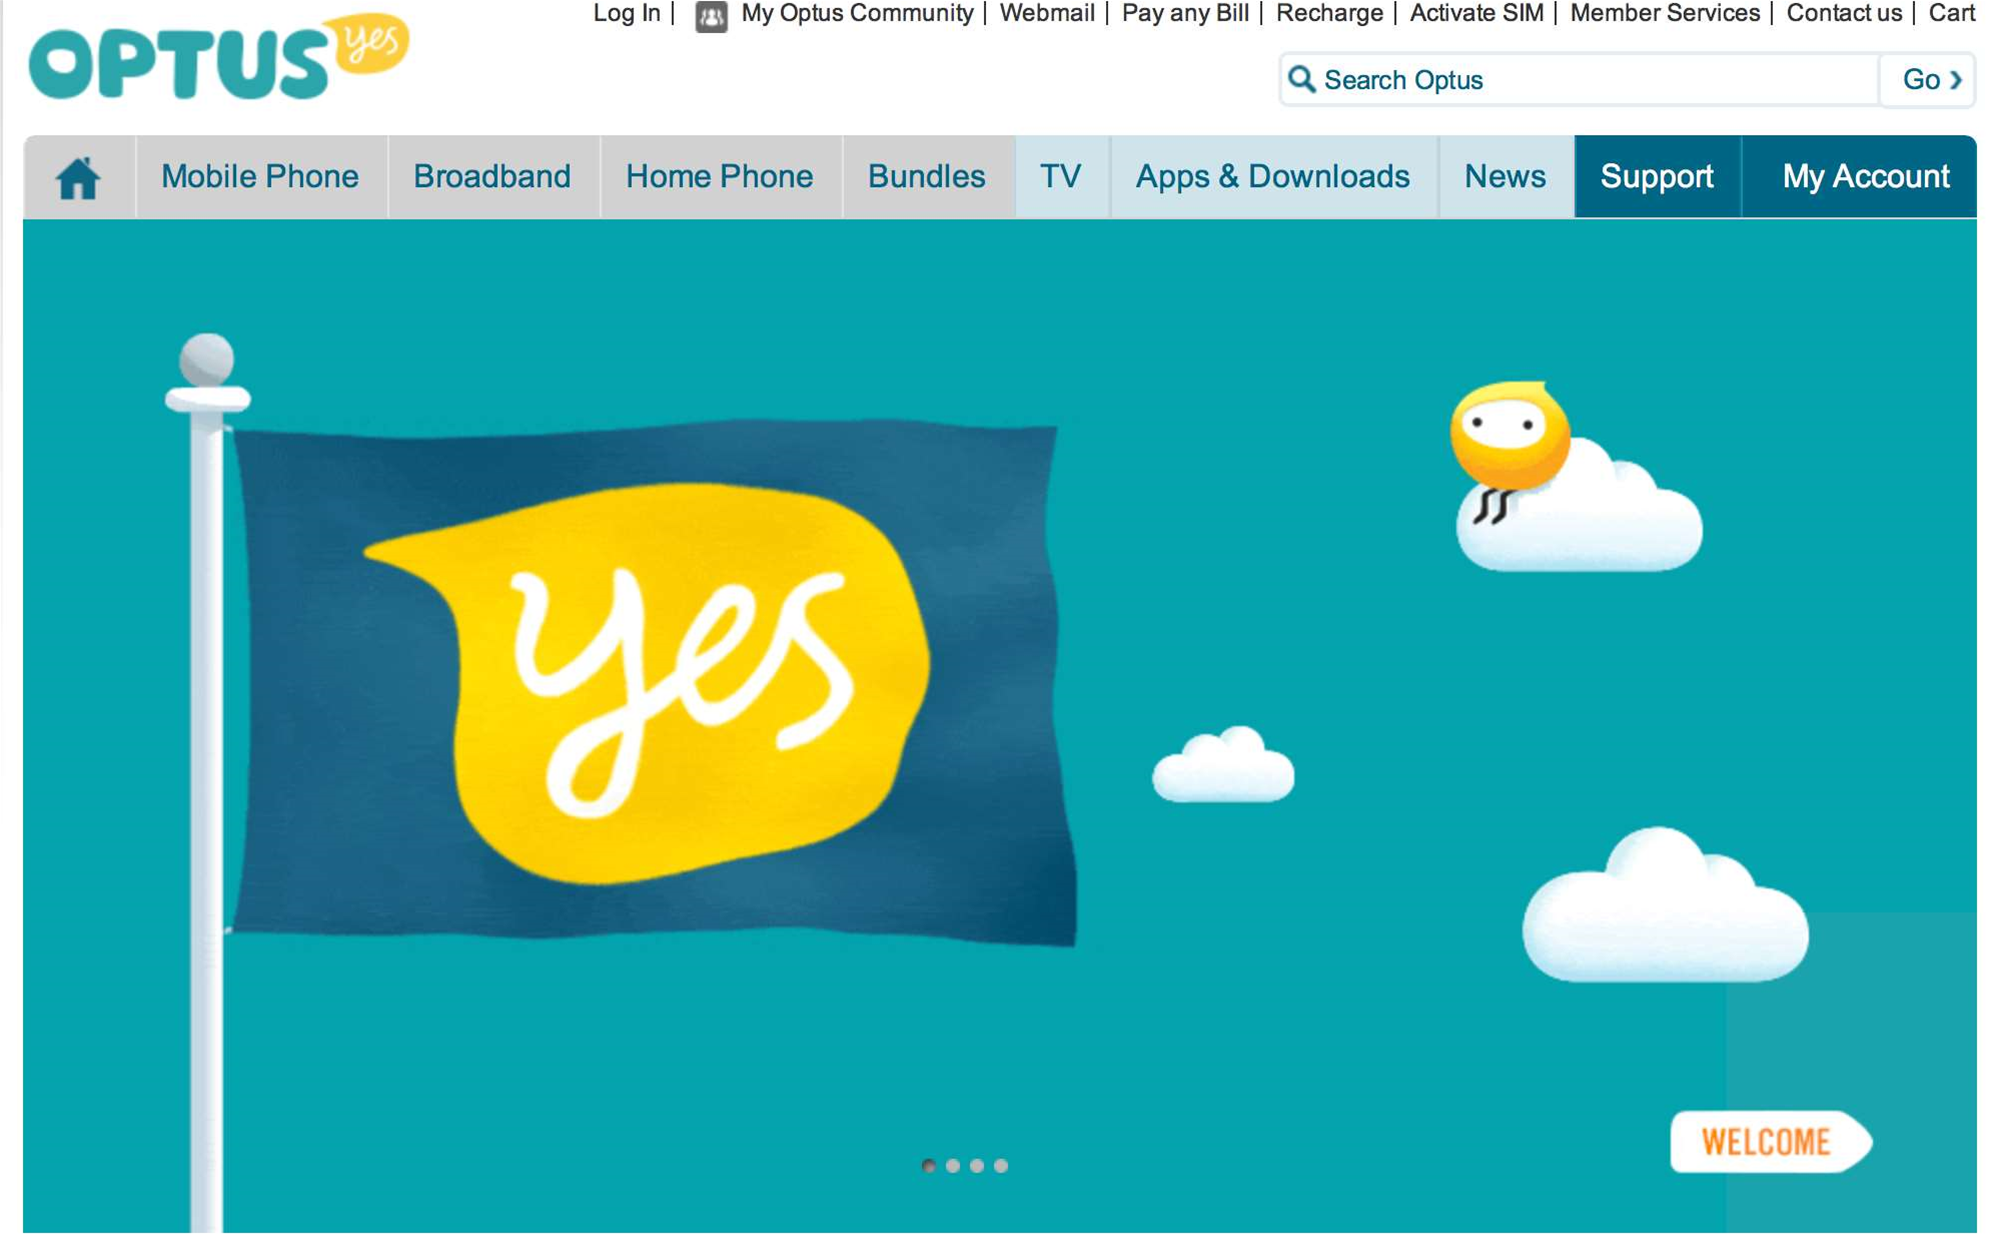 Optus overhauls its branding and mobile plans